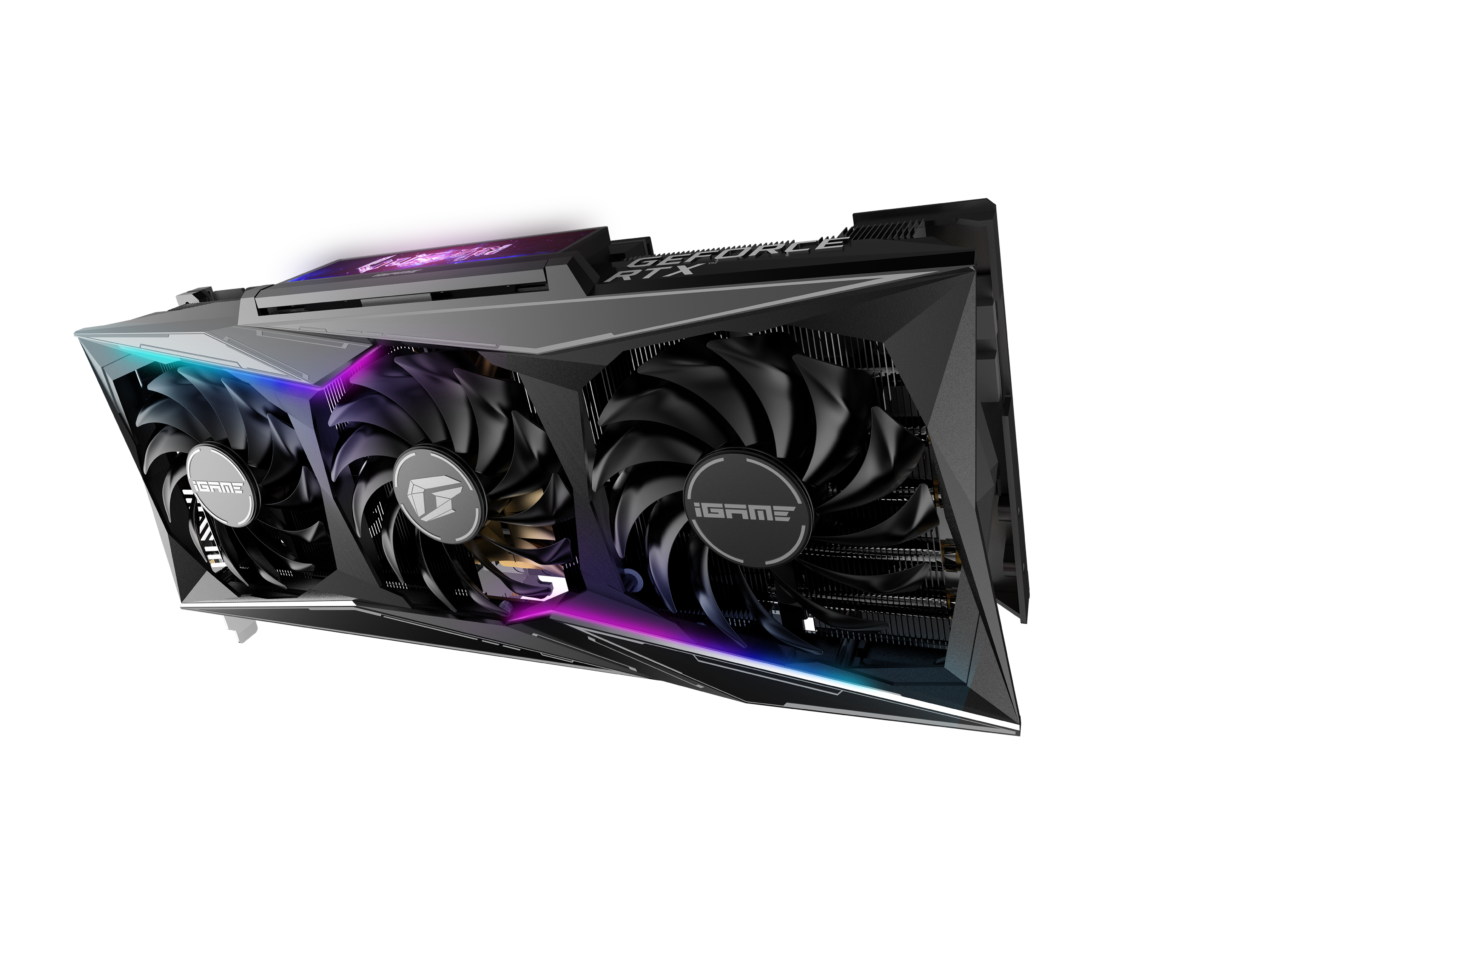 colorful-igame-geforce-rtx-3080-vulcan-x-oc-10g-v-3-125f4e638a4e9d22-65488526